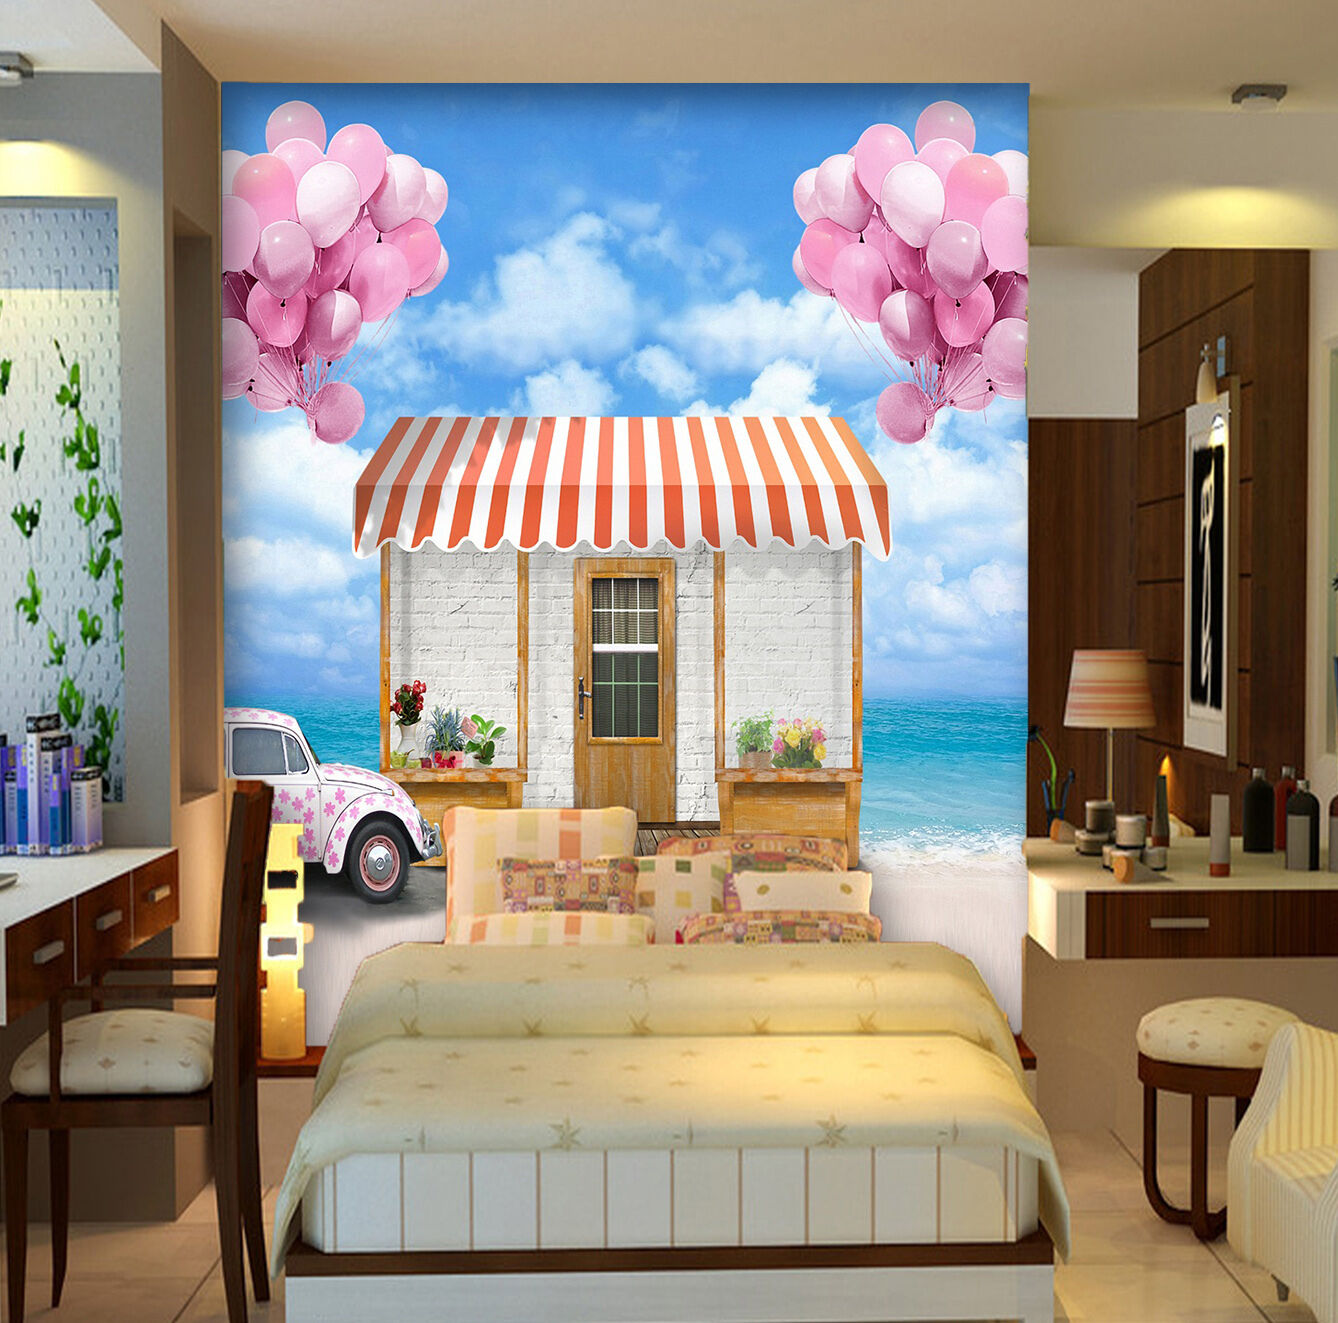 3D balloon house car Wall Paper wall Print Decal Wall Deco Indoor wall Mural